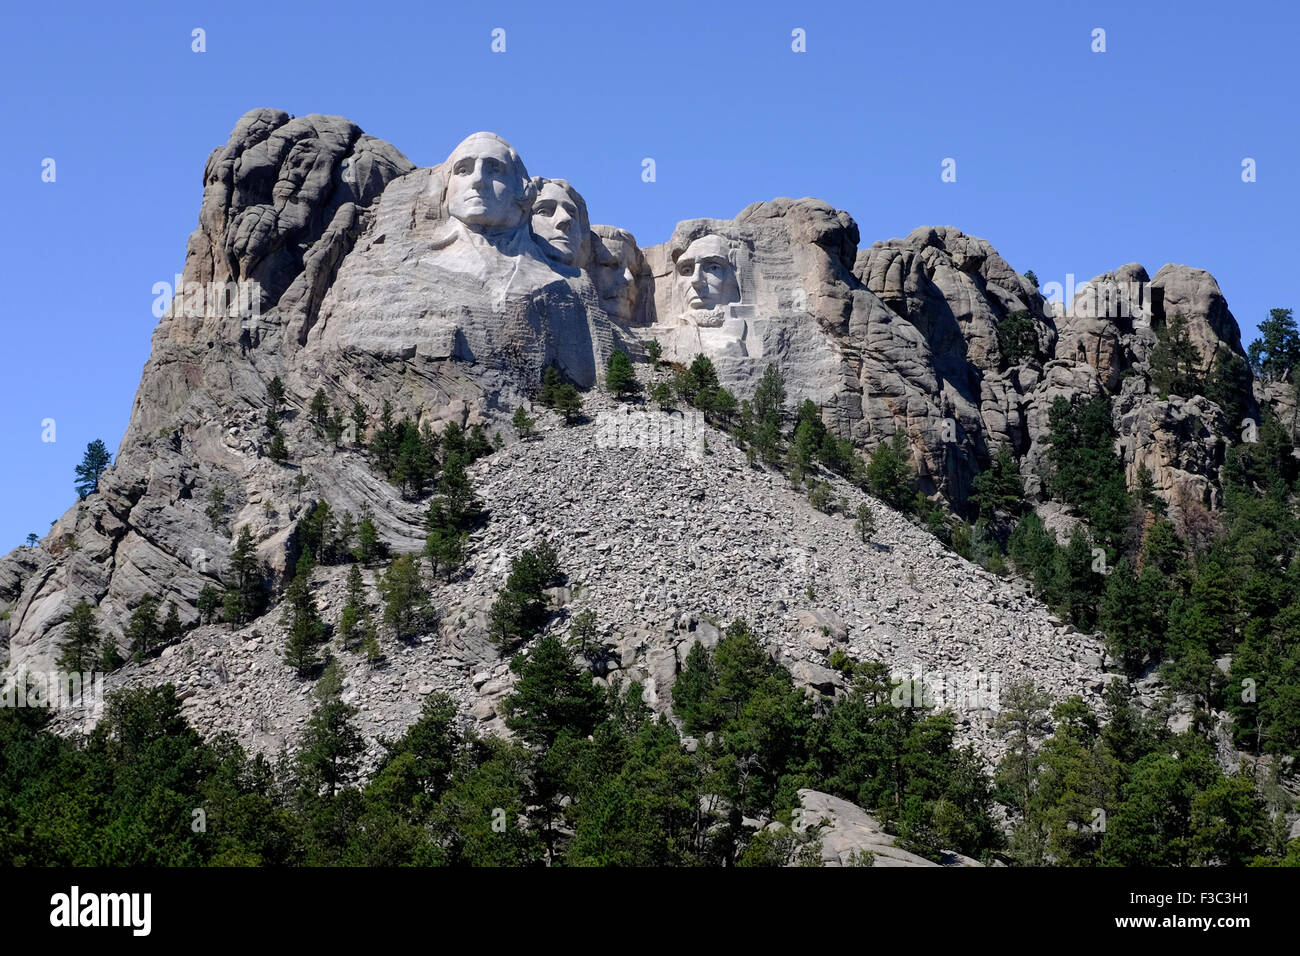 Mount Rushmore National Monument near Keystone, South Dakota - Stock Image